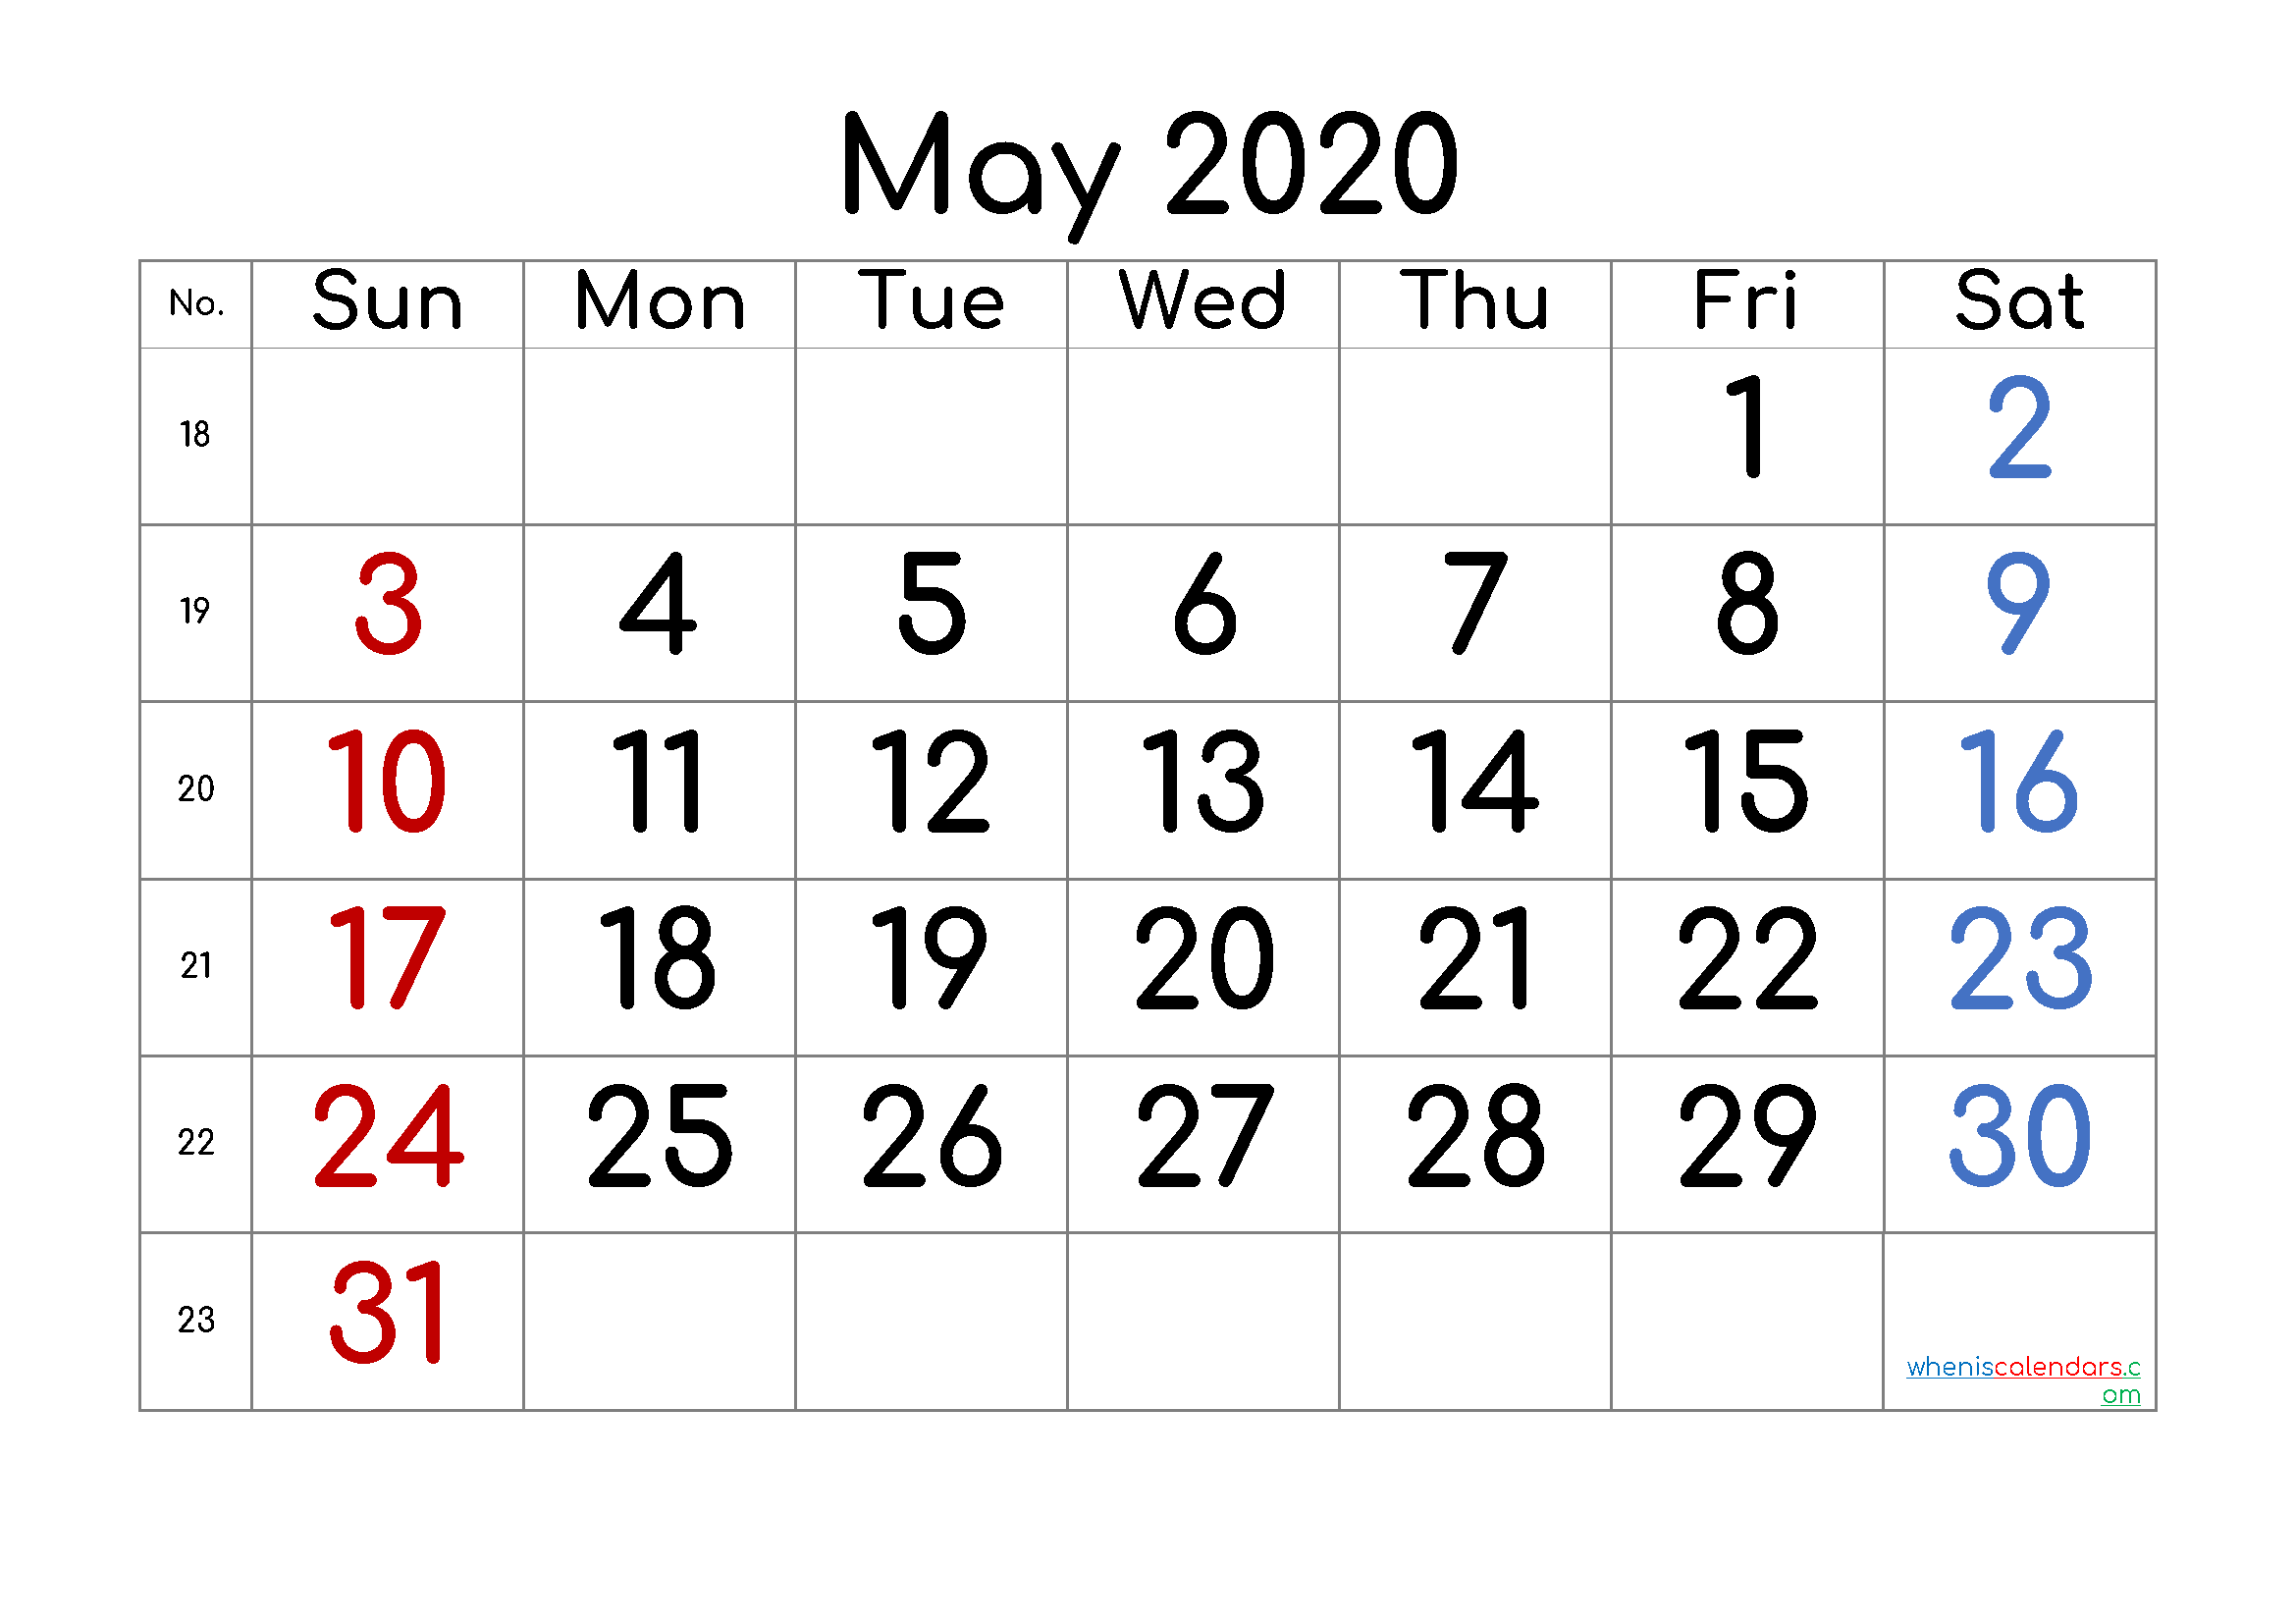 May 2020 Printable Calendar with Week Numbers